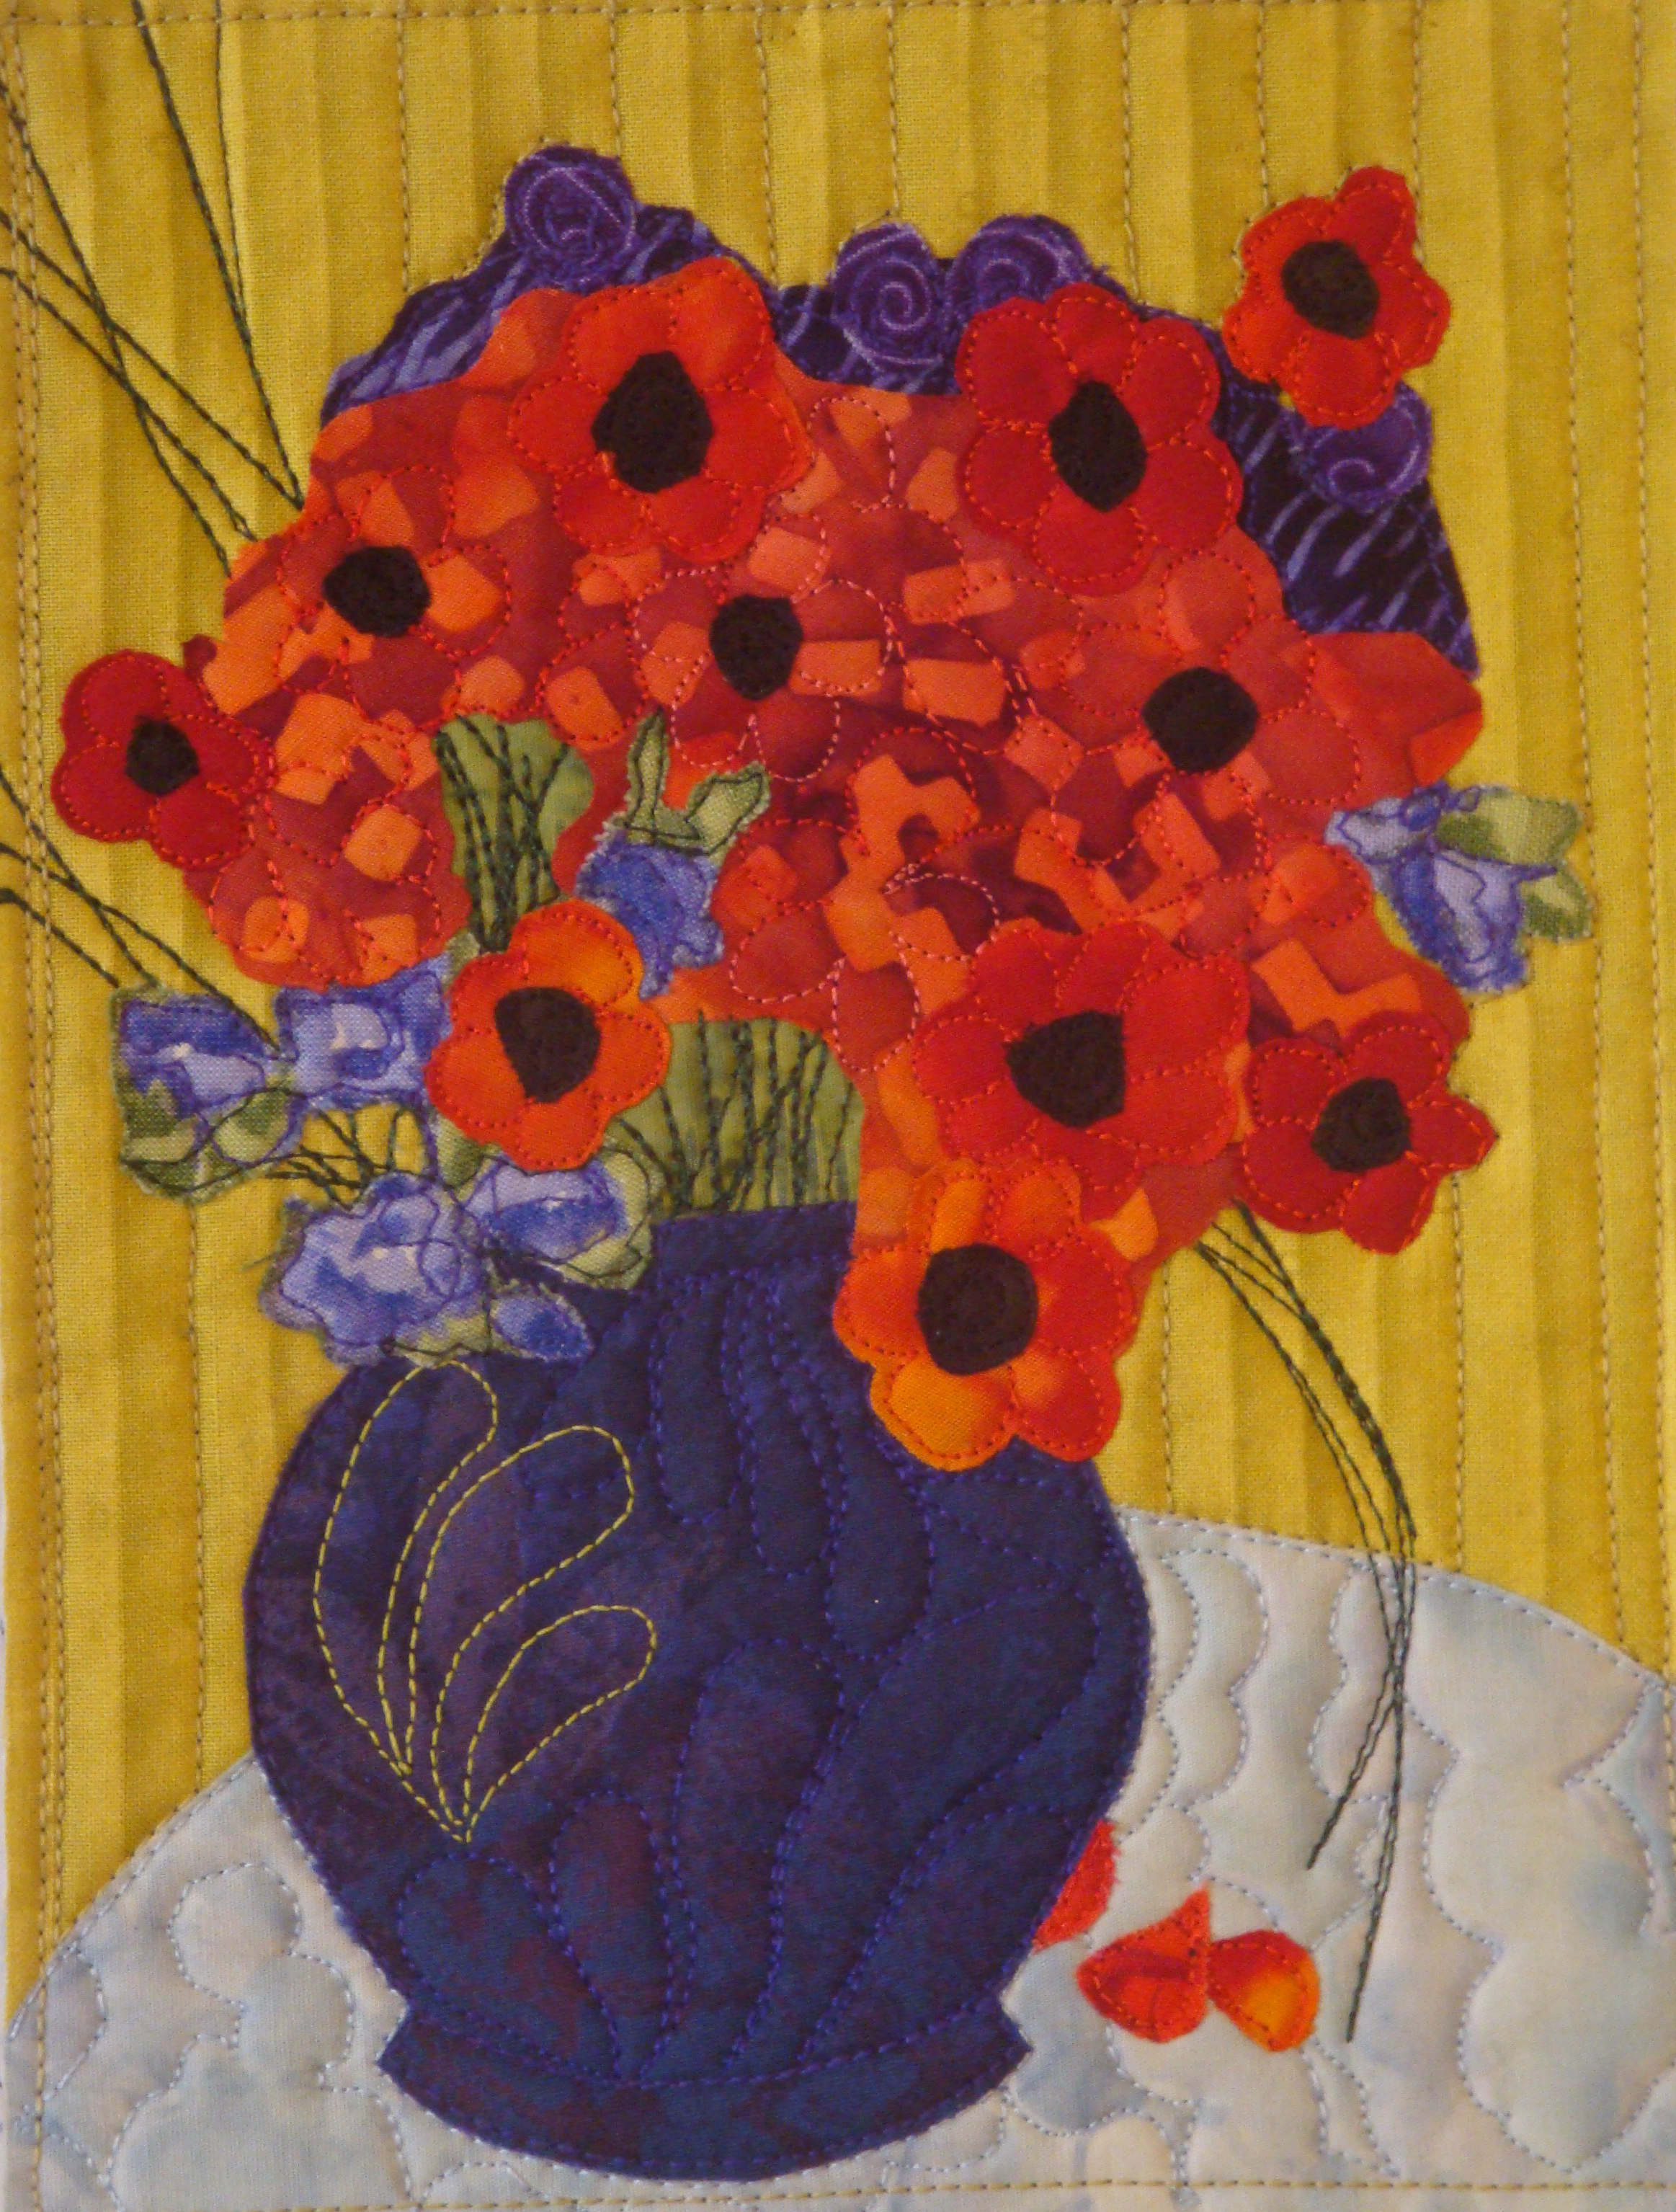 Channeling Van Gogh: Red Poppies